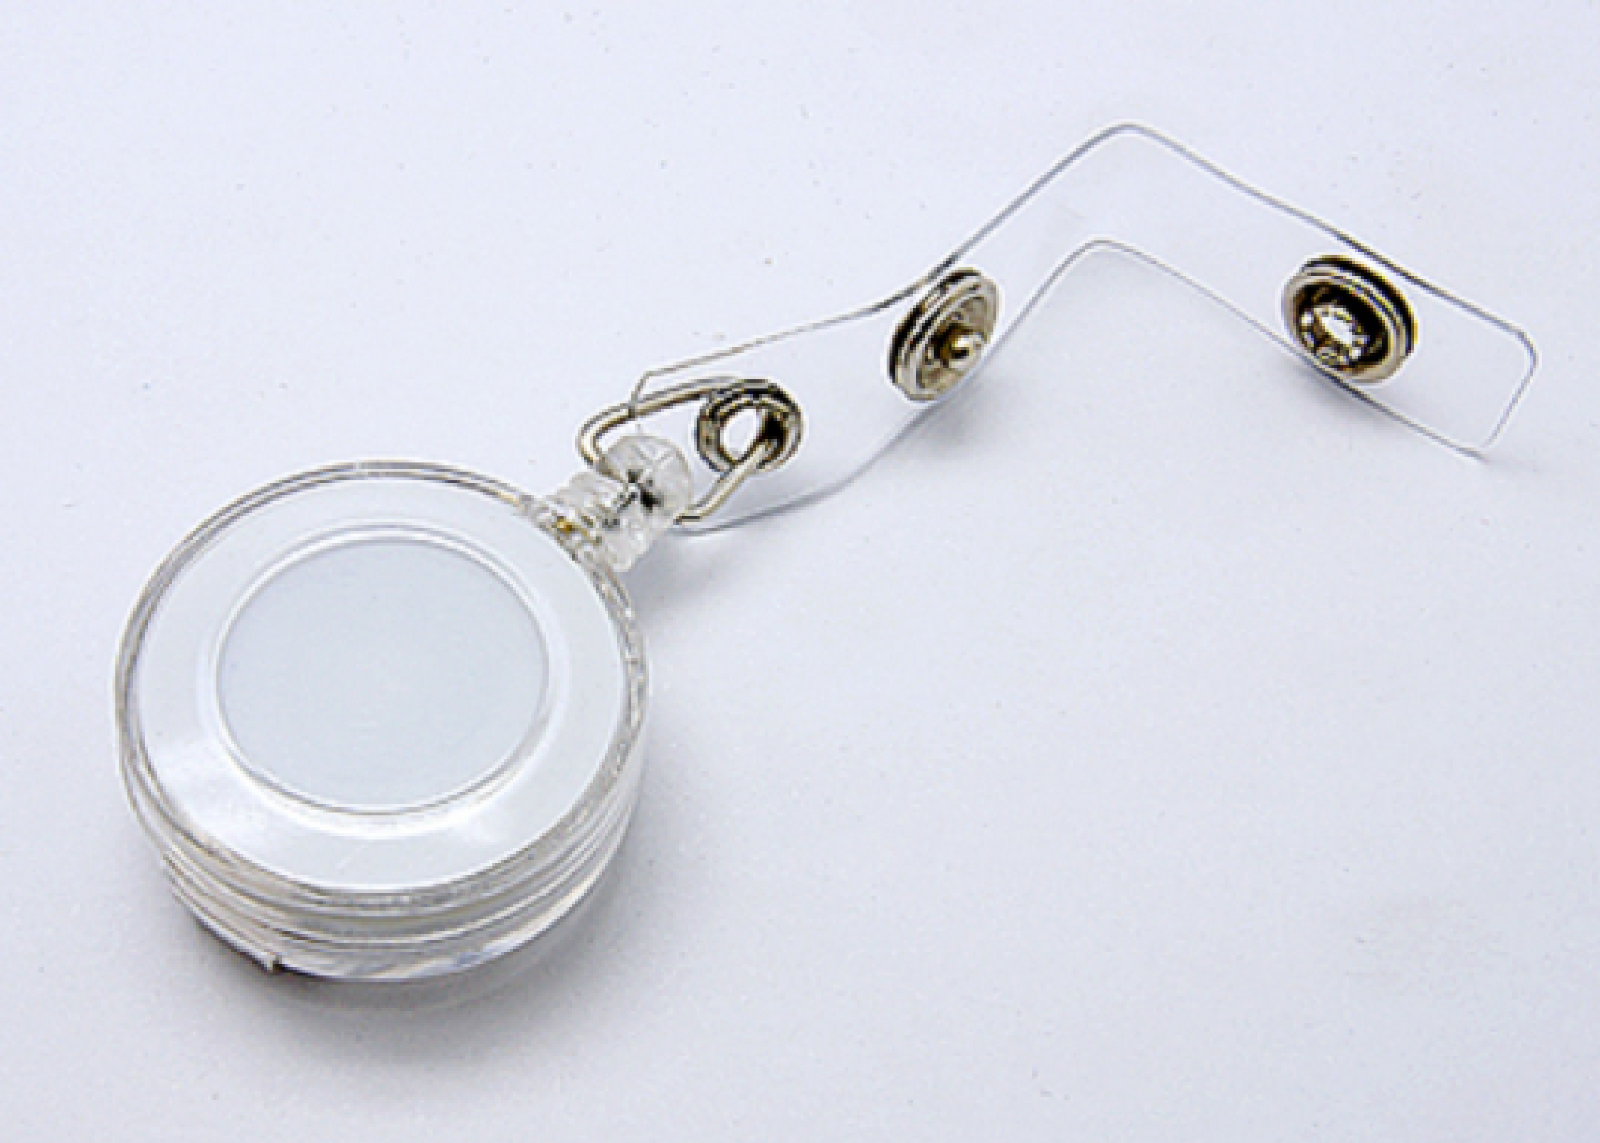 1 Transparent Clear ID Reel for Ski Passes or Lanyards Retractable. Clip on Back